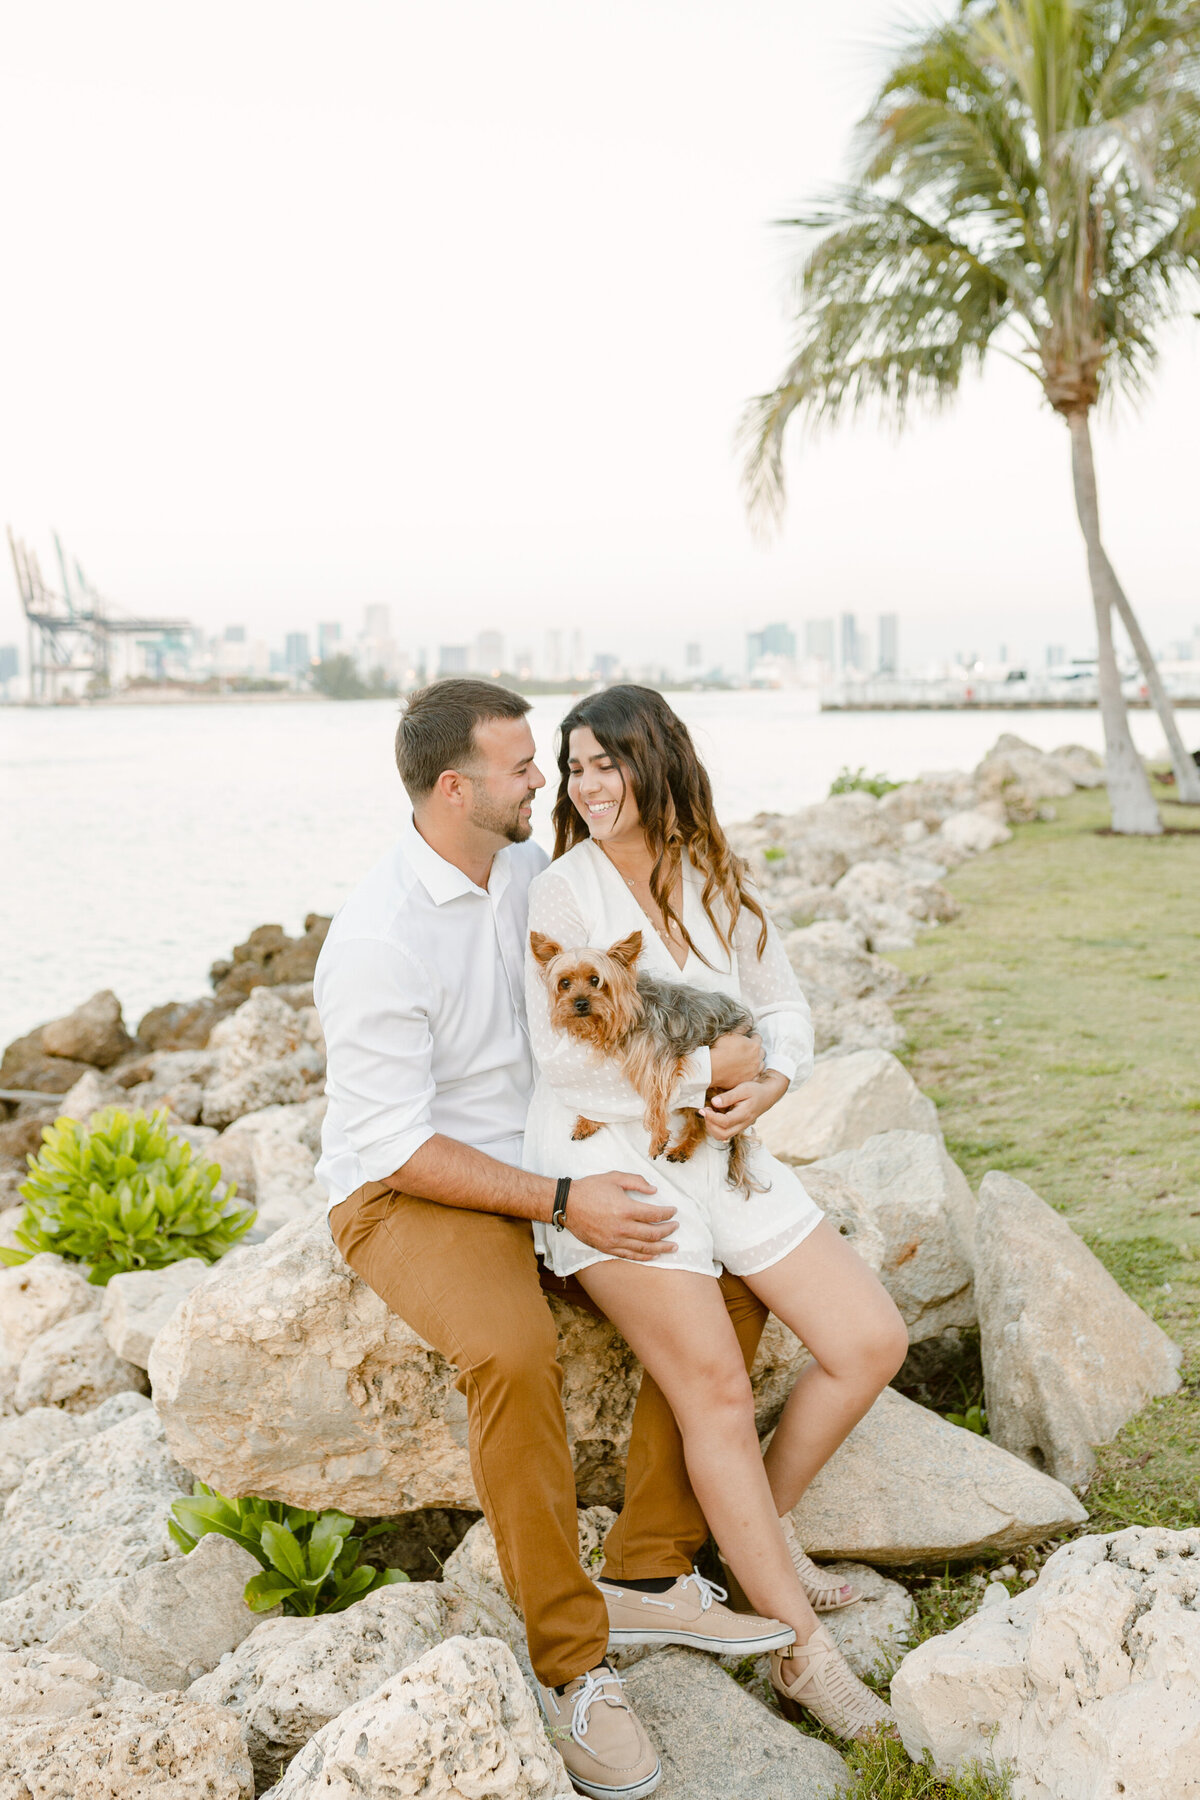 South Pointe Park Engagement Photography Session 3